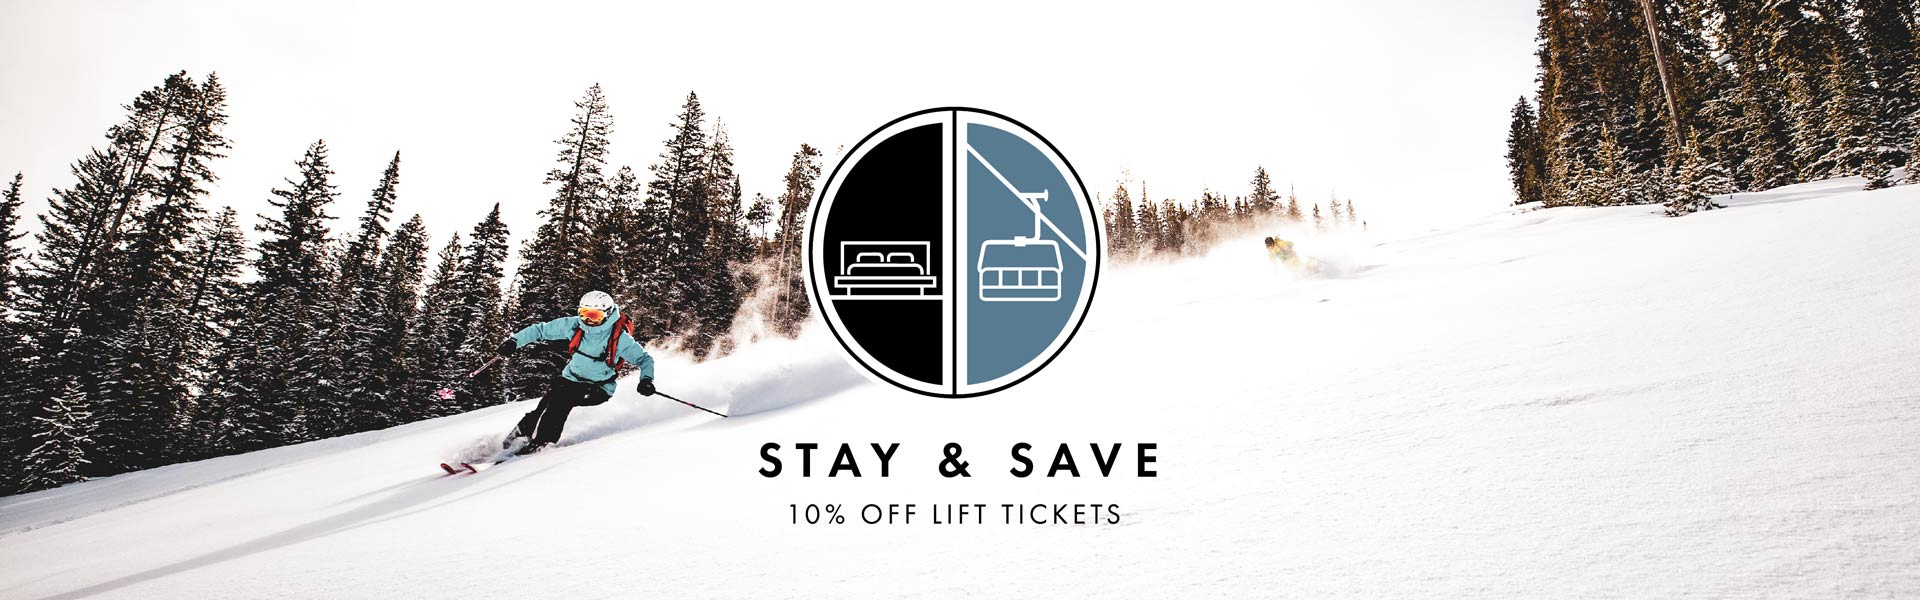 "Image of skiers with an icon with text: ""Stay & Save 